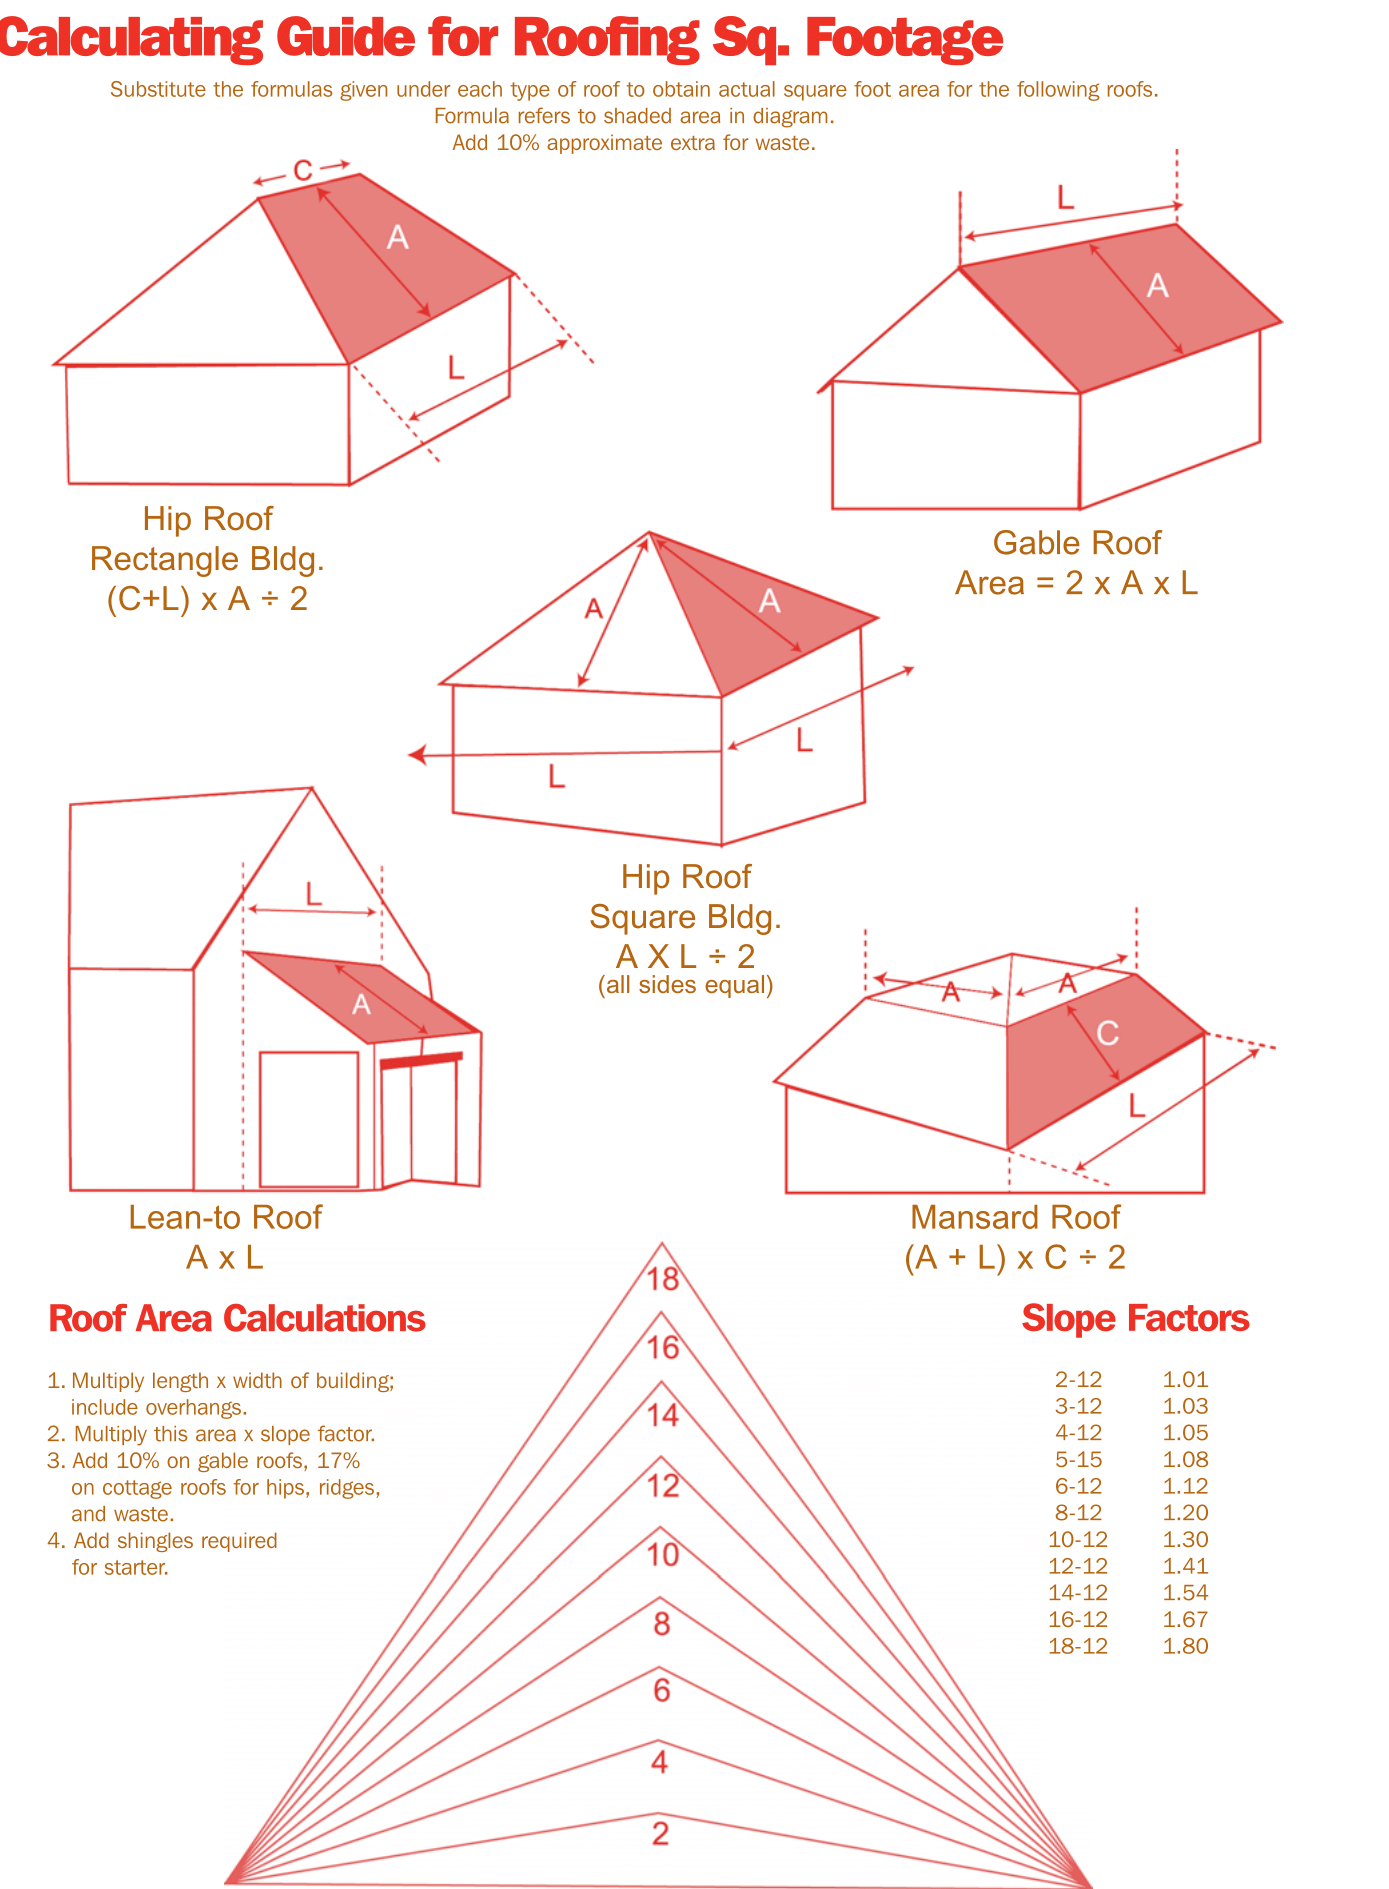 Roofing Is Measured In Squares To Figure Out Your Roof S Area A Simple Geometry Can Be Used The Key Is To Be A Roofing Estimate Roof Cost Roofing Calculator